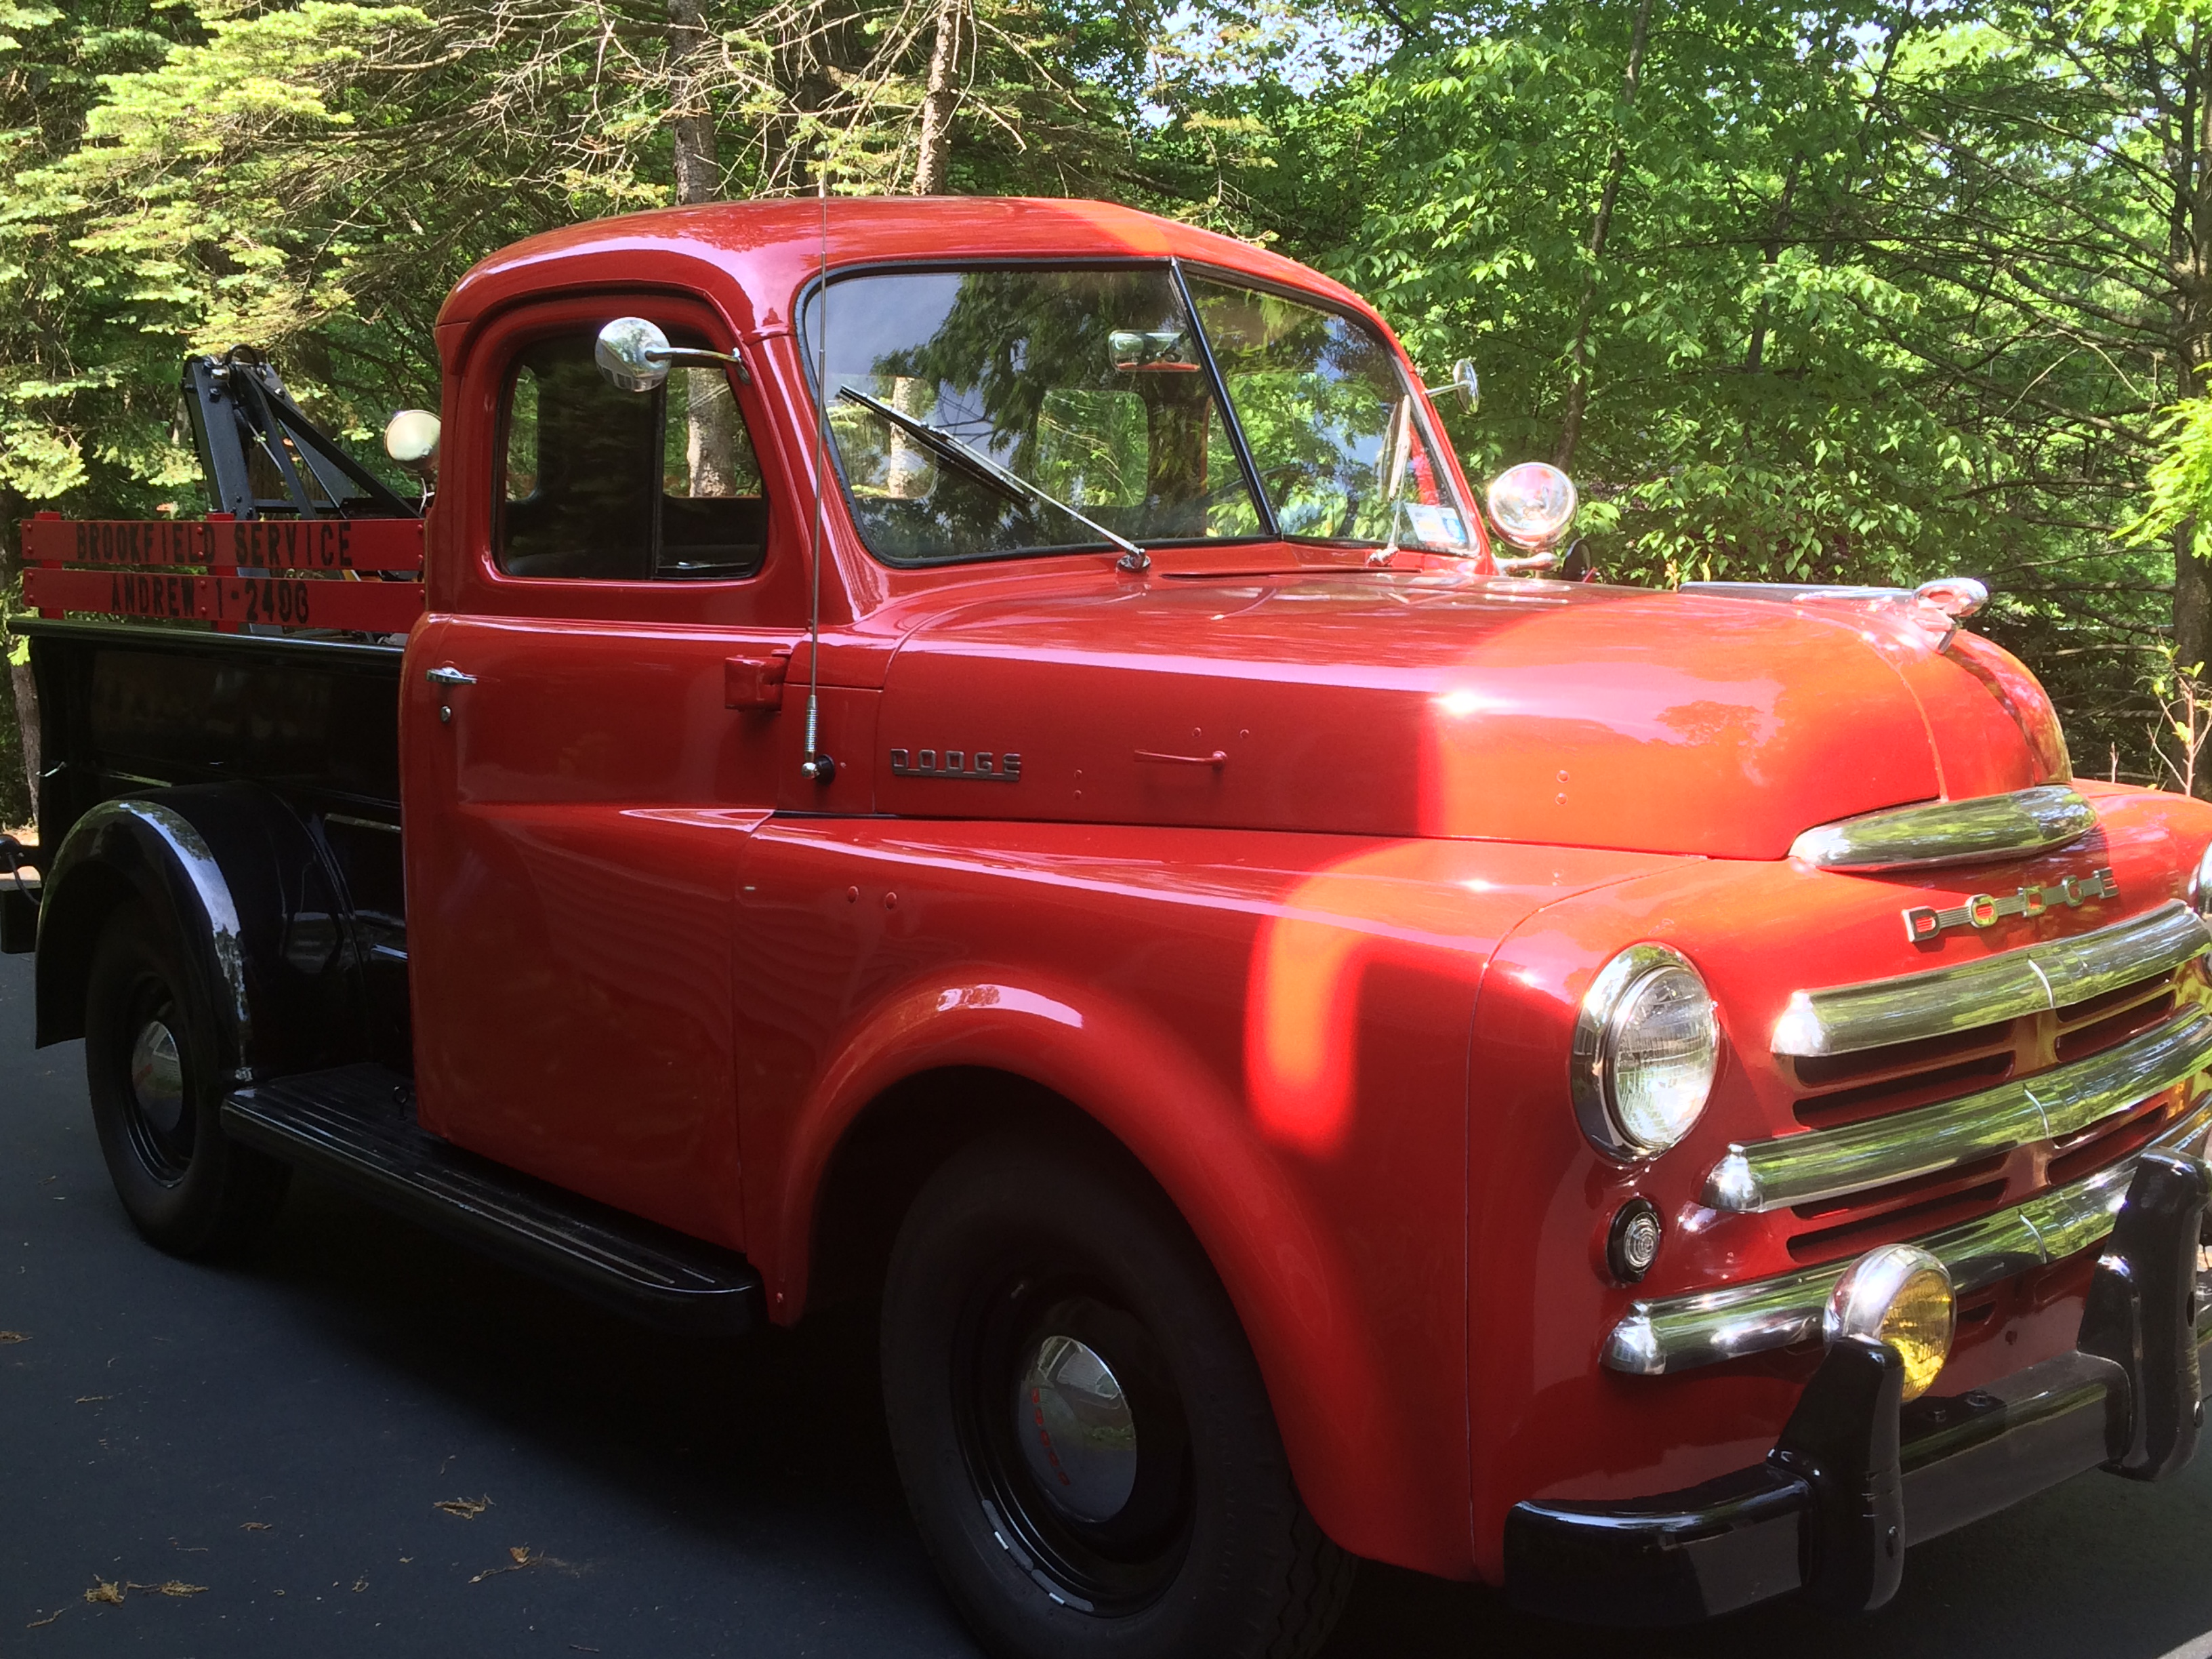 1949 Dodge Tow Truck Sold Cars For Sale Antique Automobile Club Pickup Of America Discussion Forums